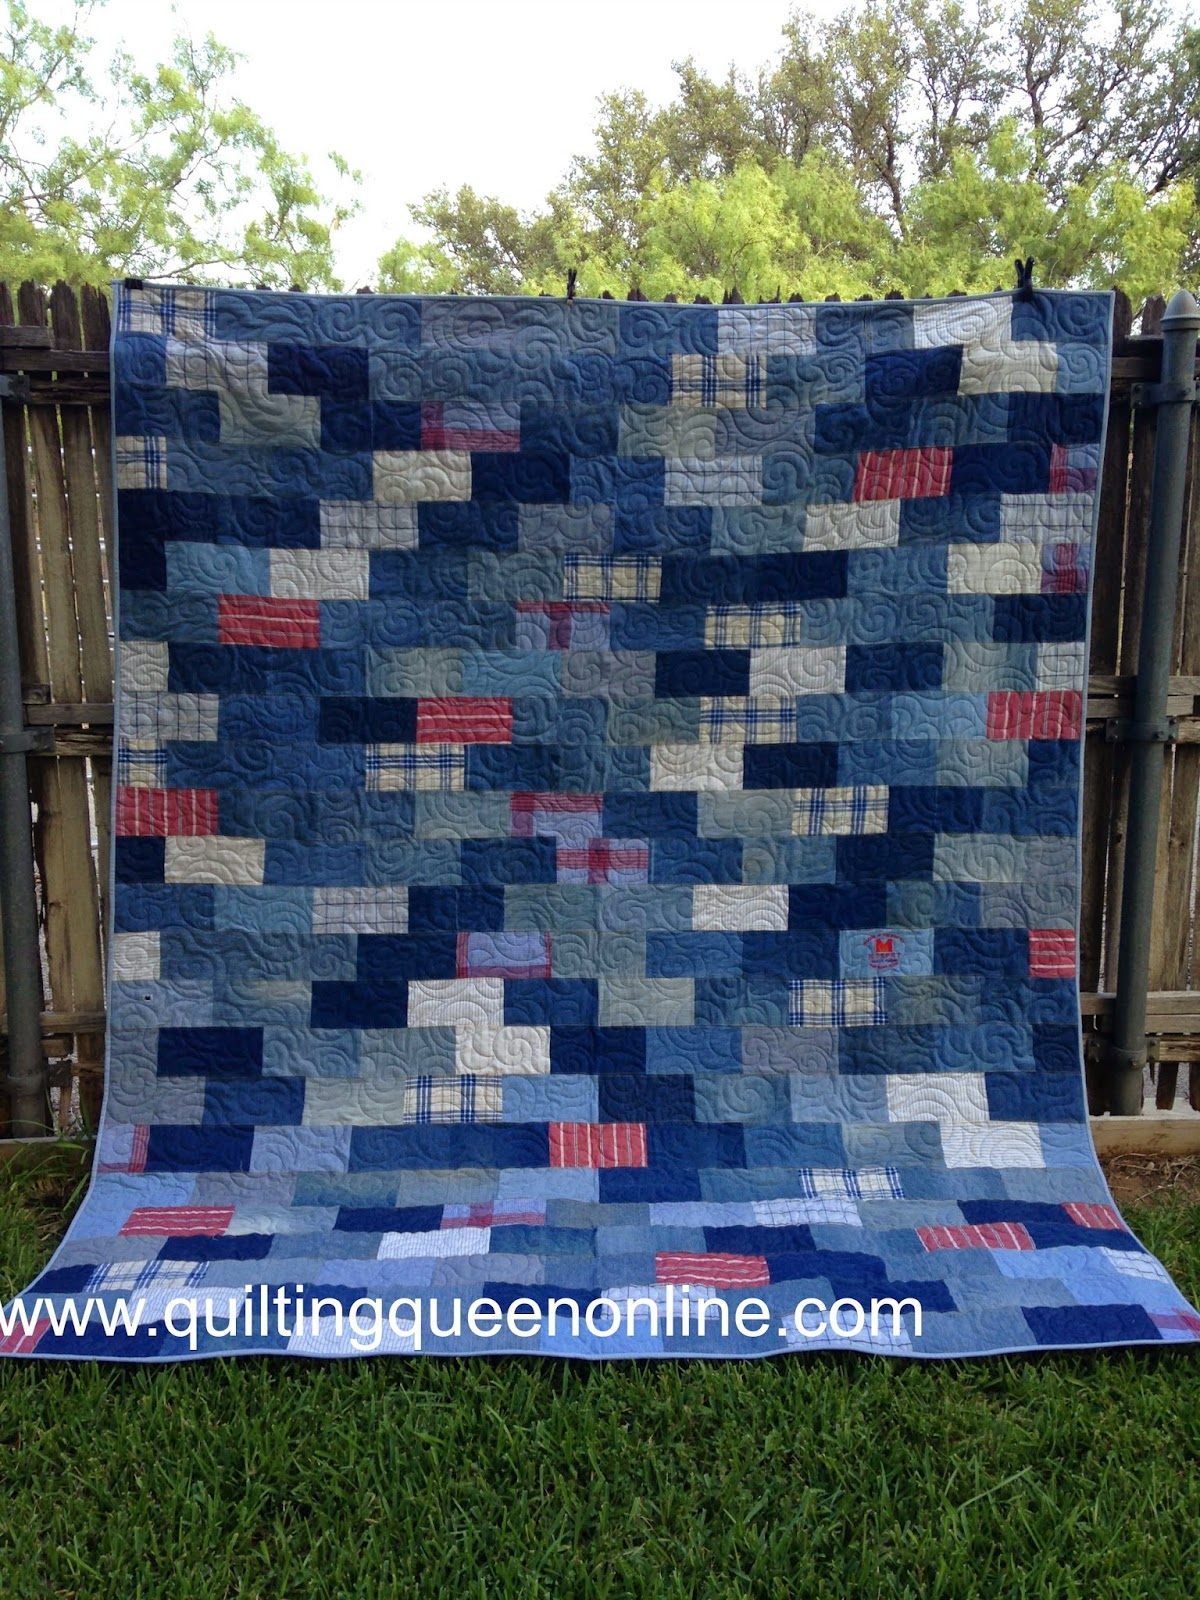 whoo make commissioned right where online quilt blue to at i nancy finished one of now heaven was is the quilting hoo m quilts ahhh denim queen